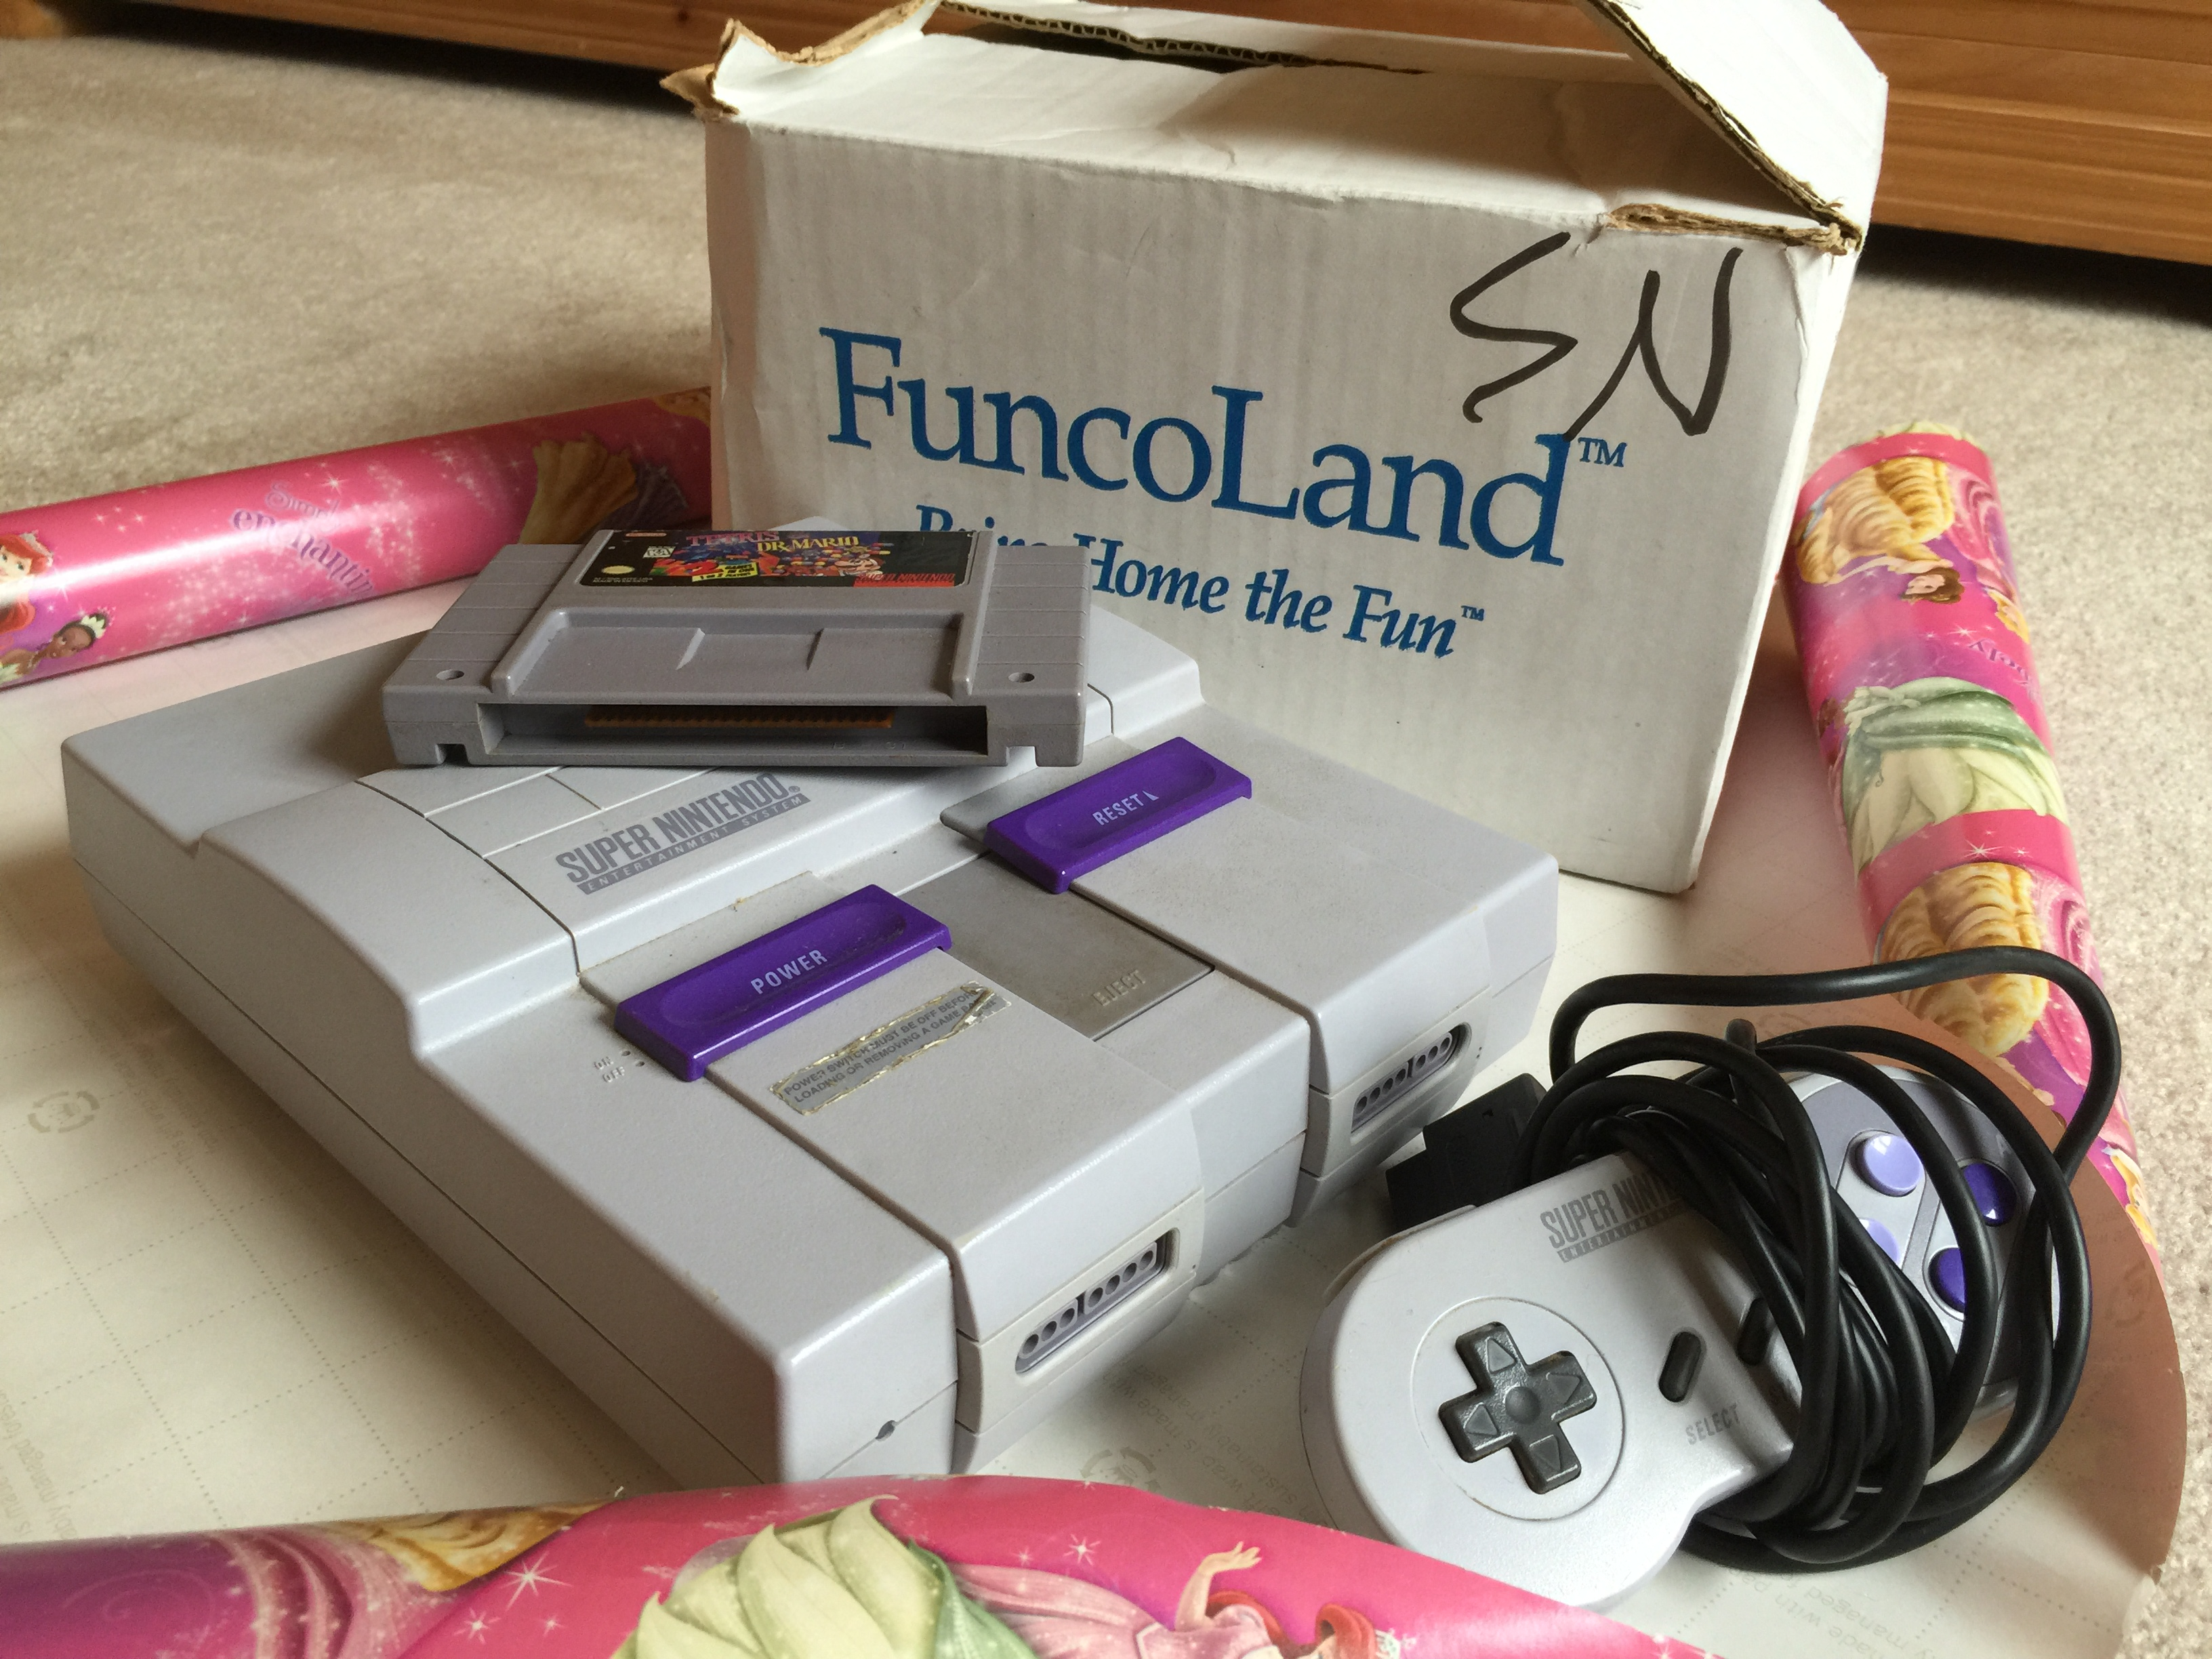 My uncle's secret SNES is about to become a family heirloom